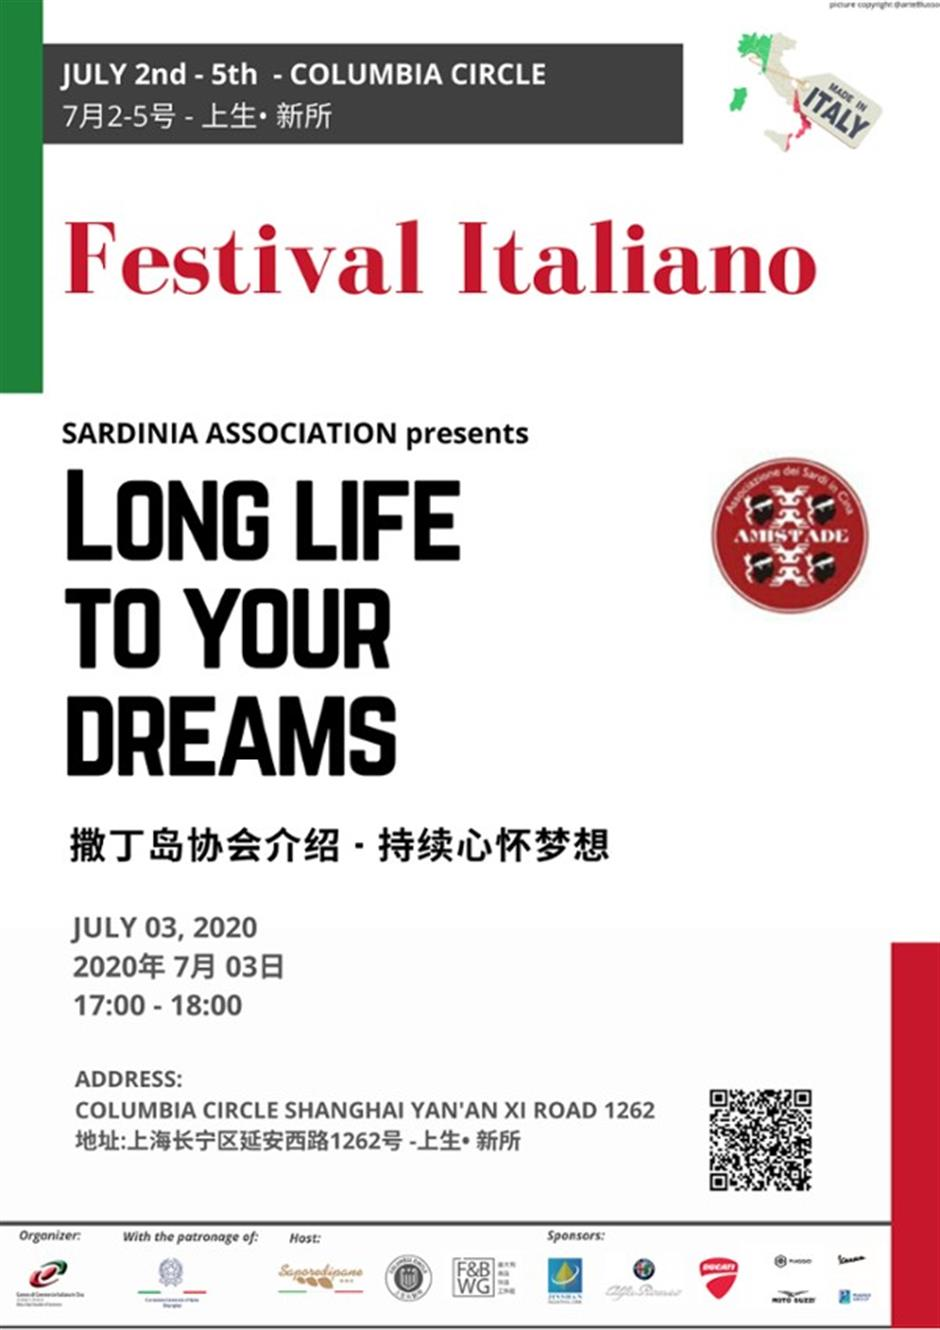 Festival Italiano, July 2nd-5th – Program of Activities